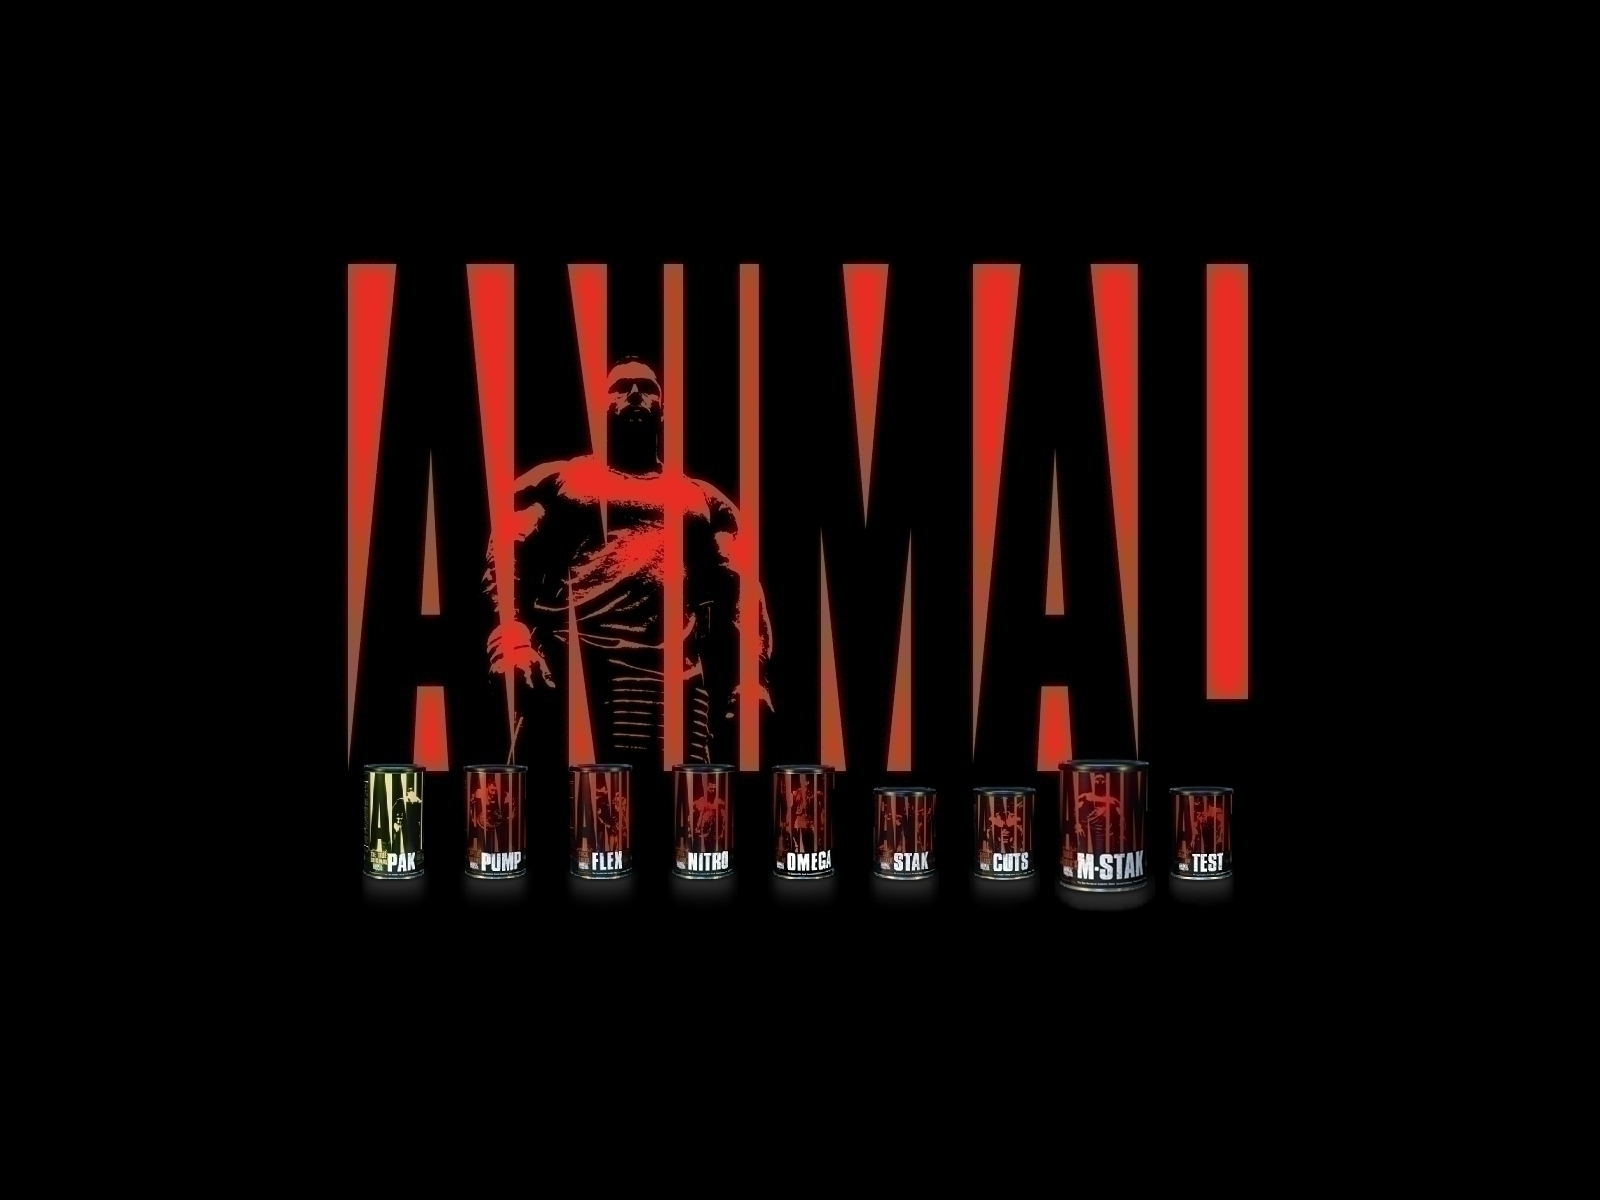 Animal Pak Wallpaper httpjobspapacomuniversal animal wallpaper 1600x1200